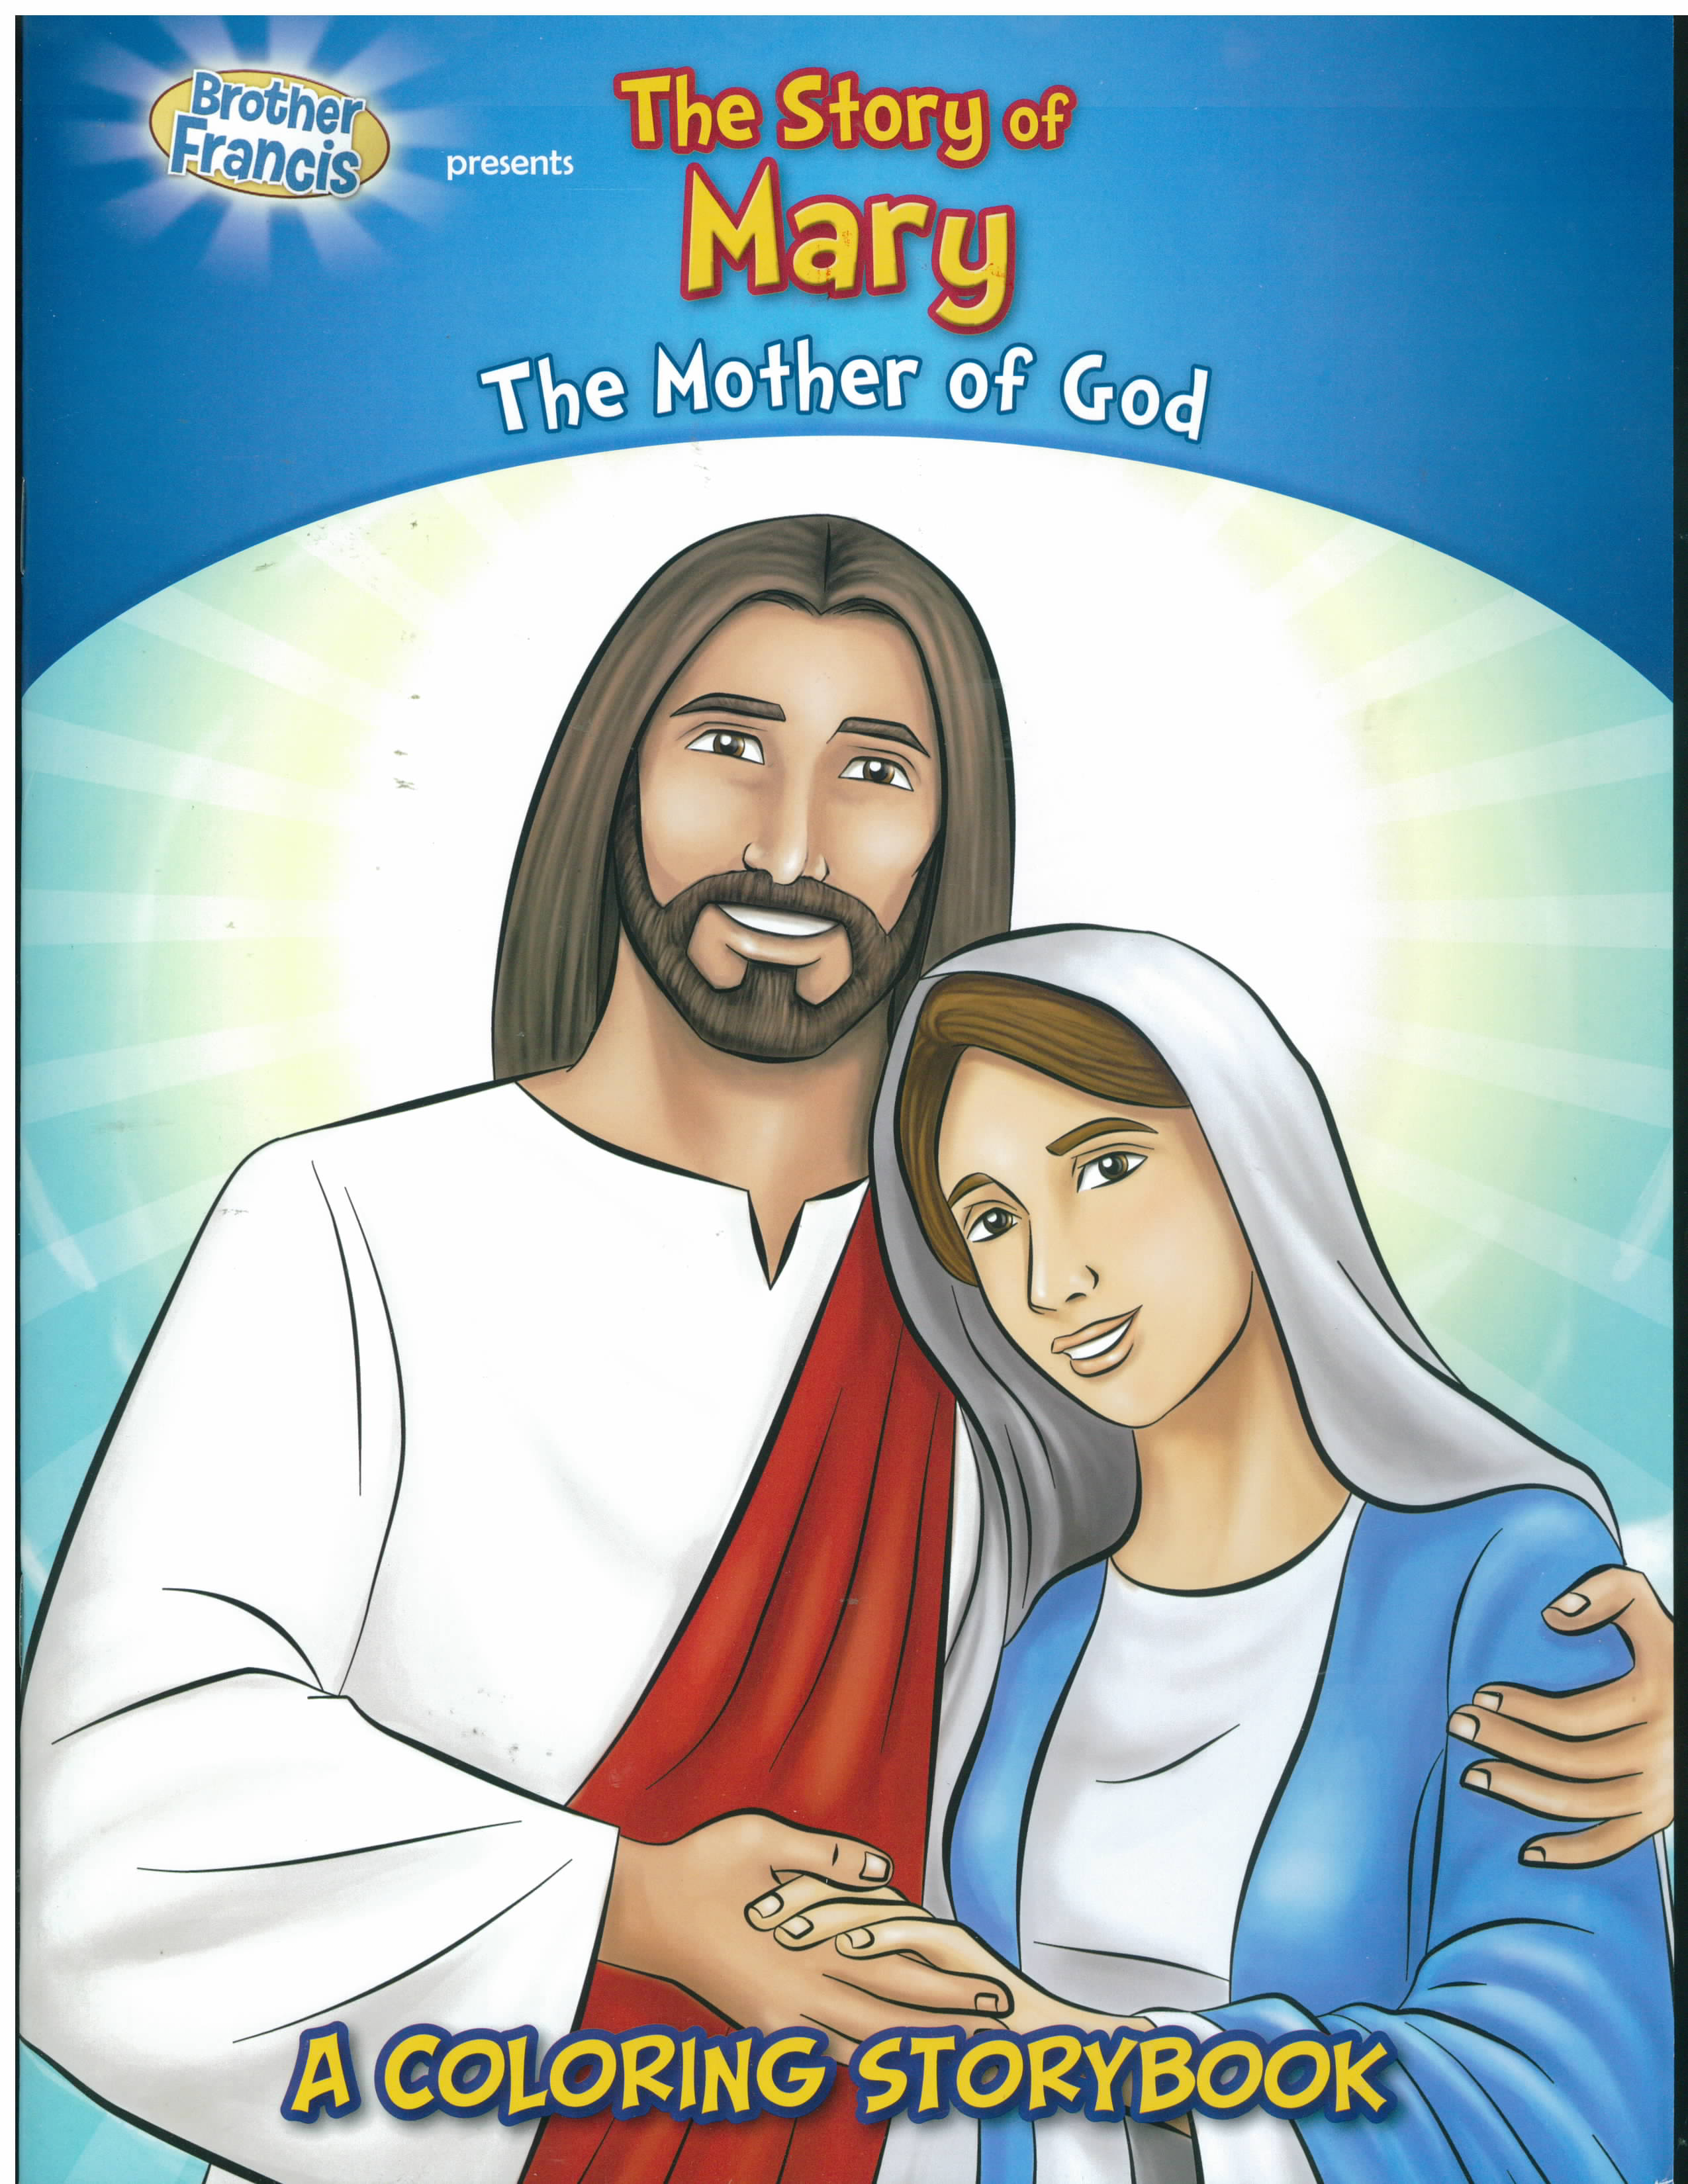 The Story of Mary Coloring Storybook-CBS-MA